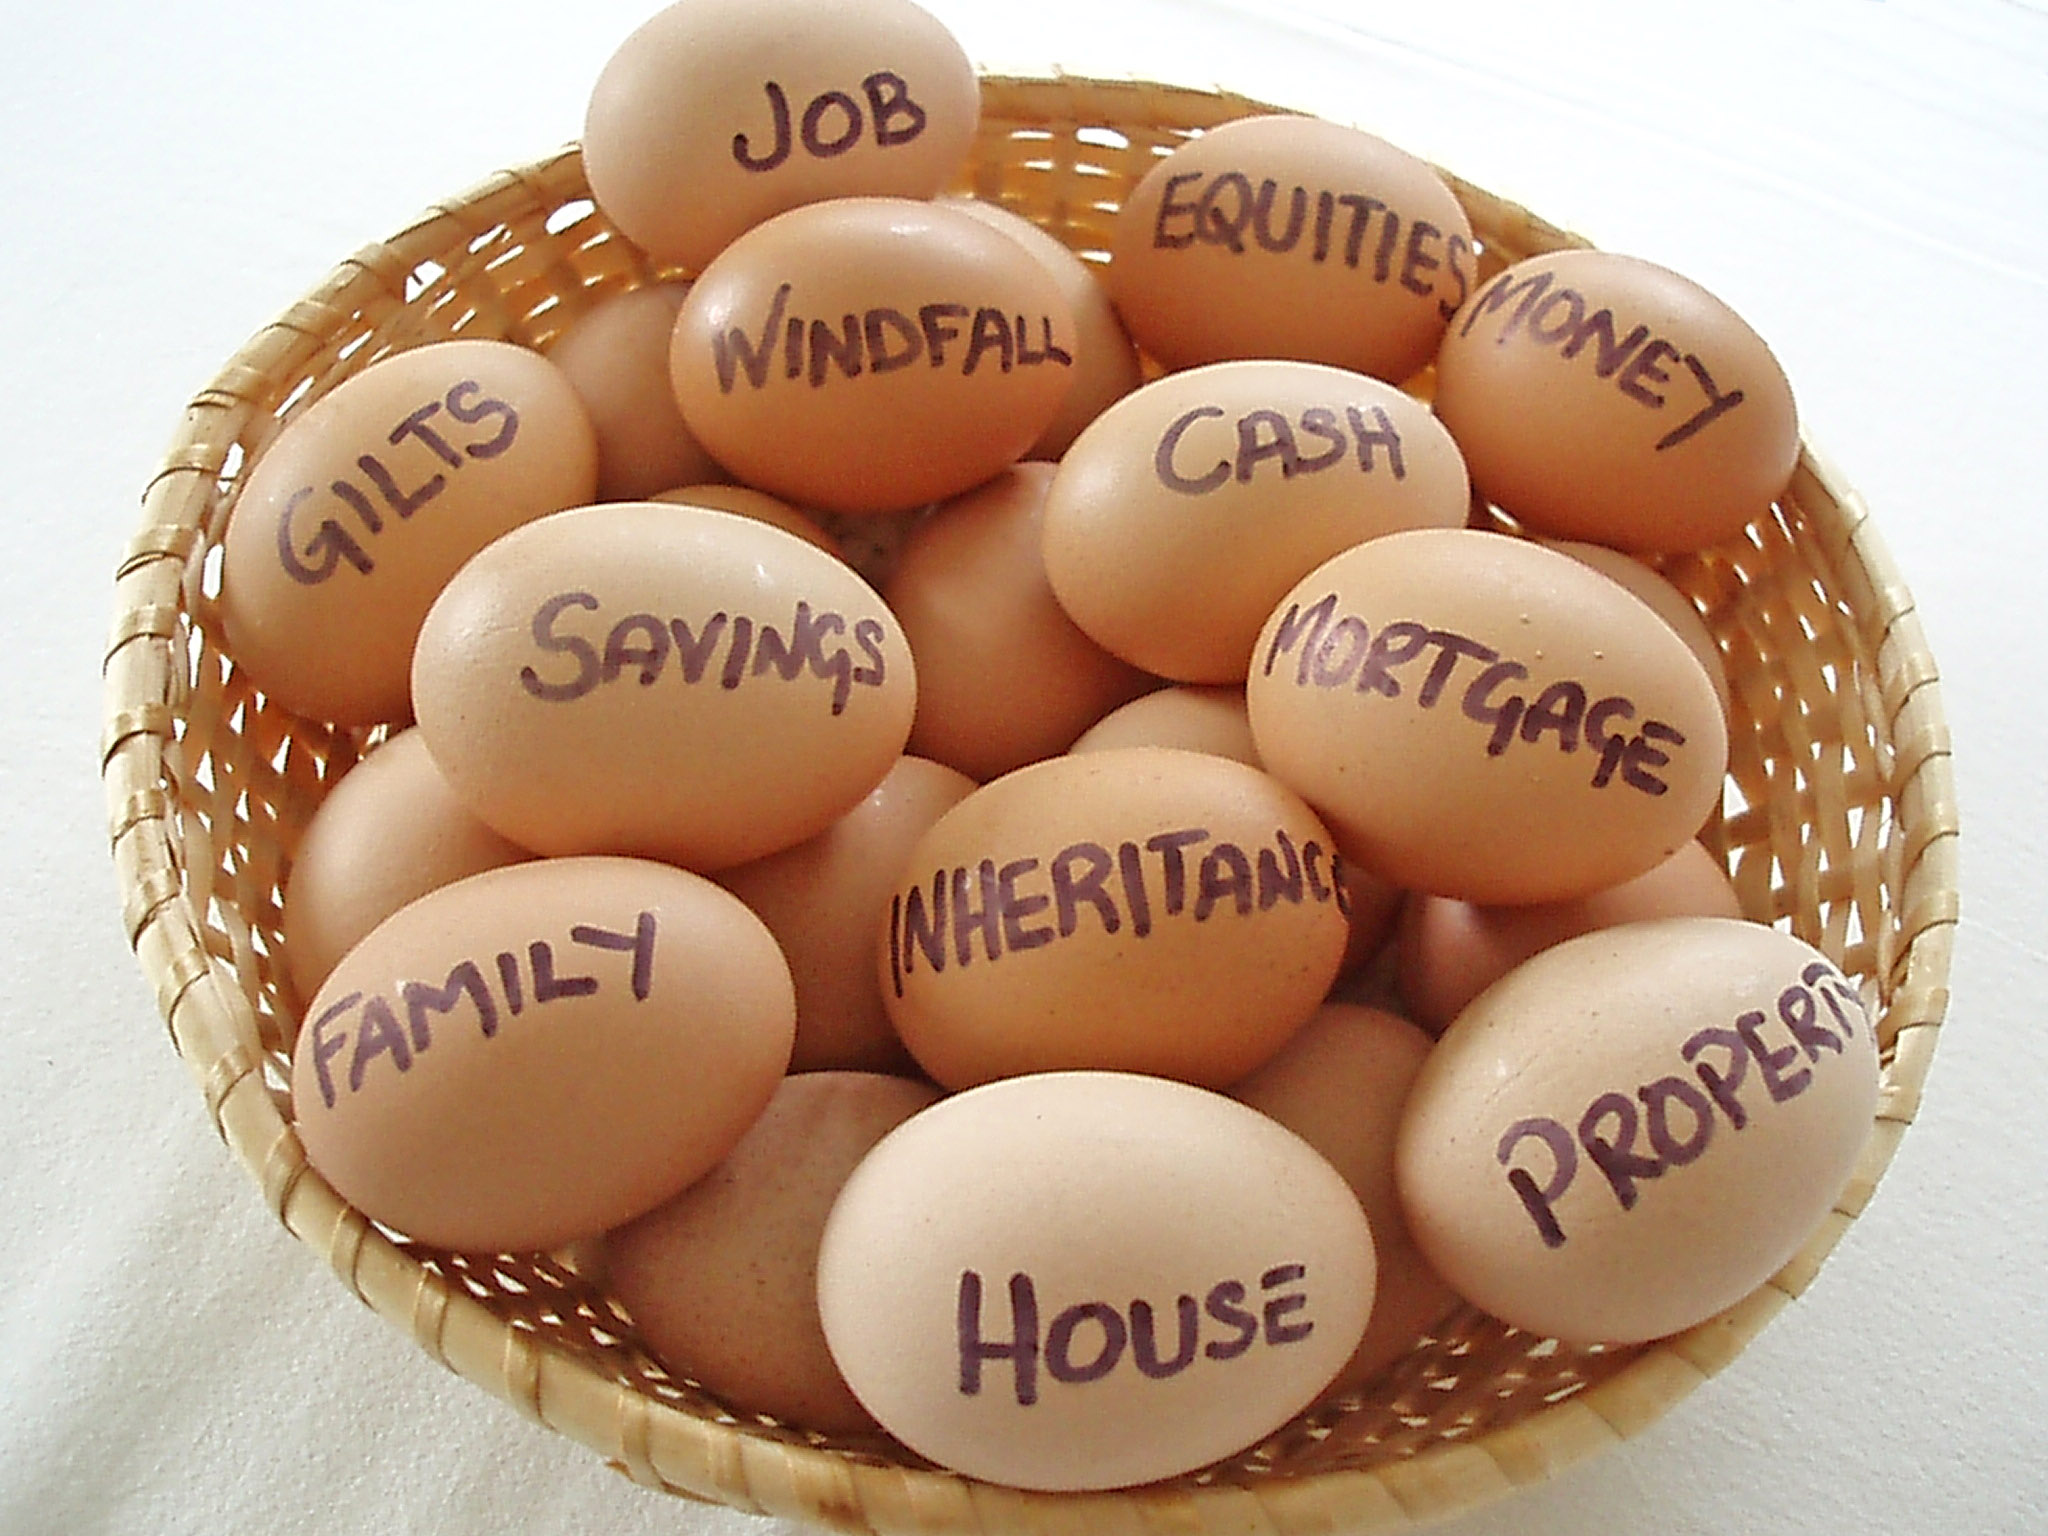 Career Insurance: Don't Keep Your Eggs in One Basket- Diversify Your Income Streams